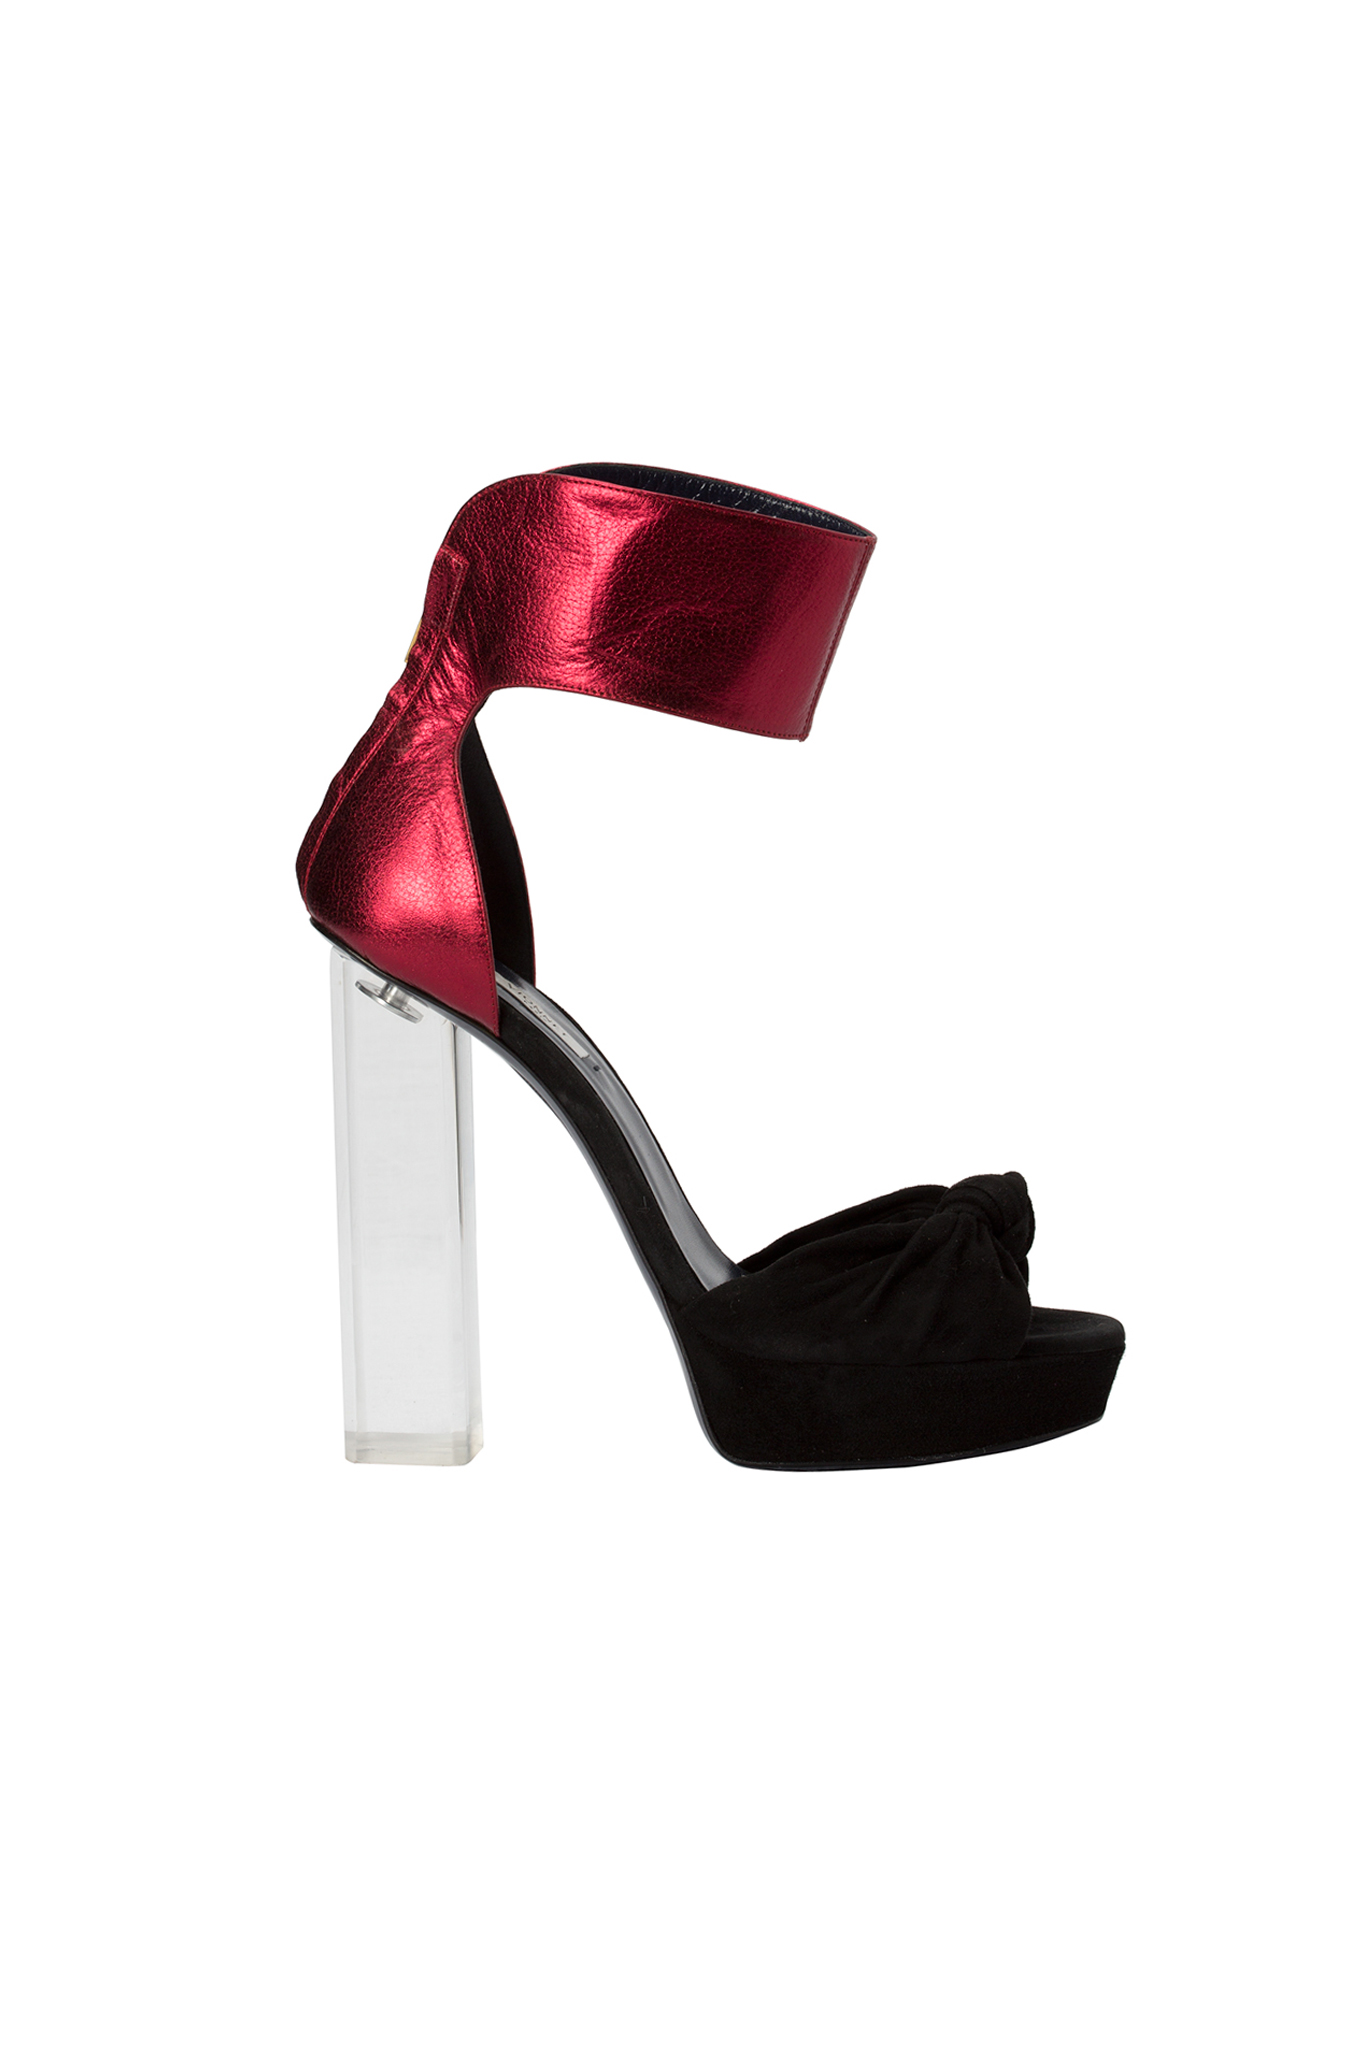 04-07-accessories-trends-fall-2015-lucite-heel.jpg